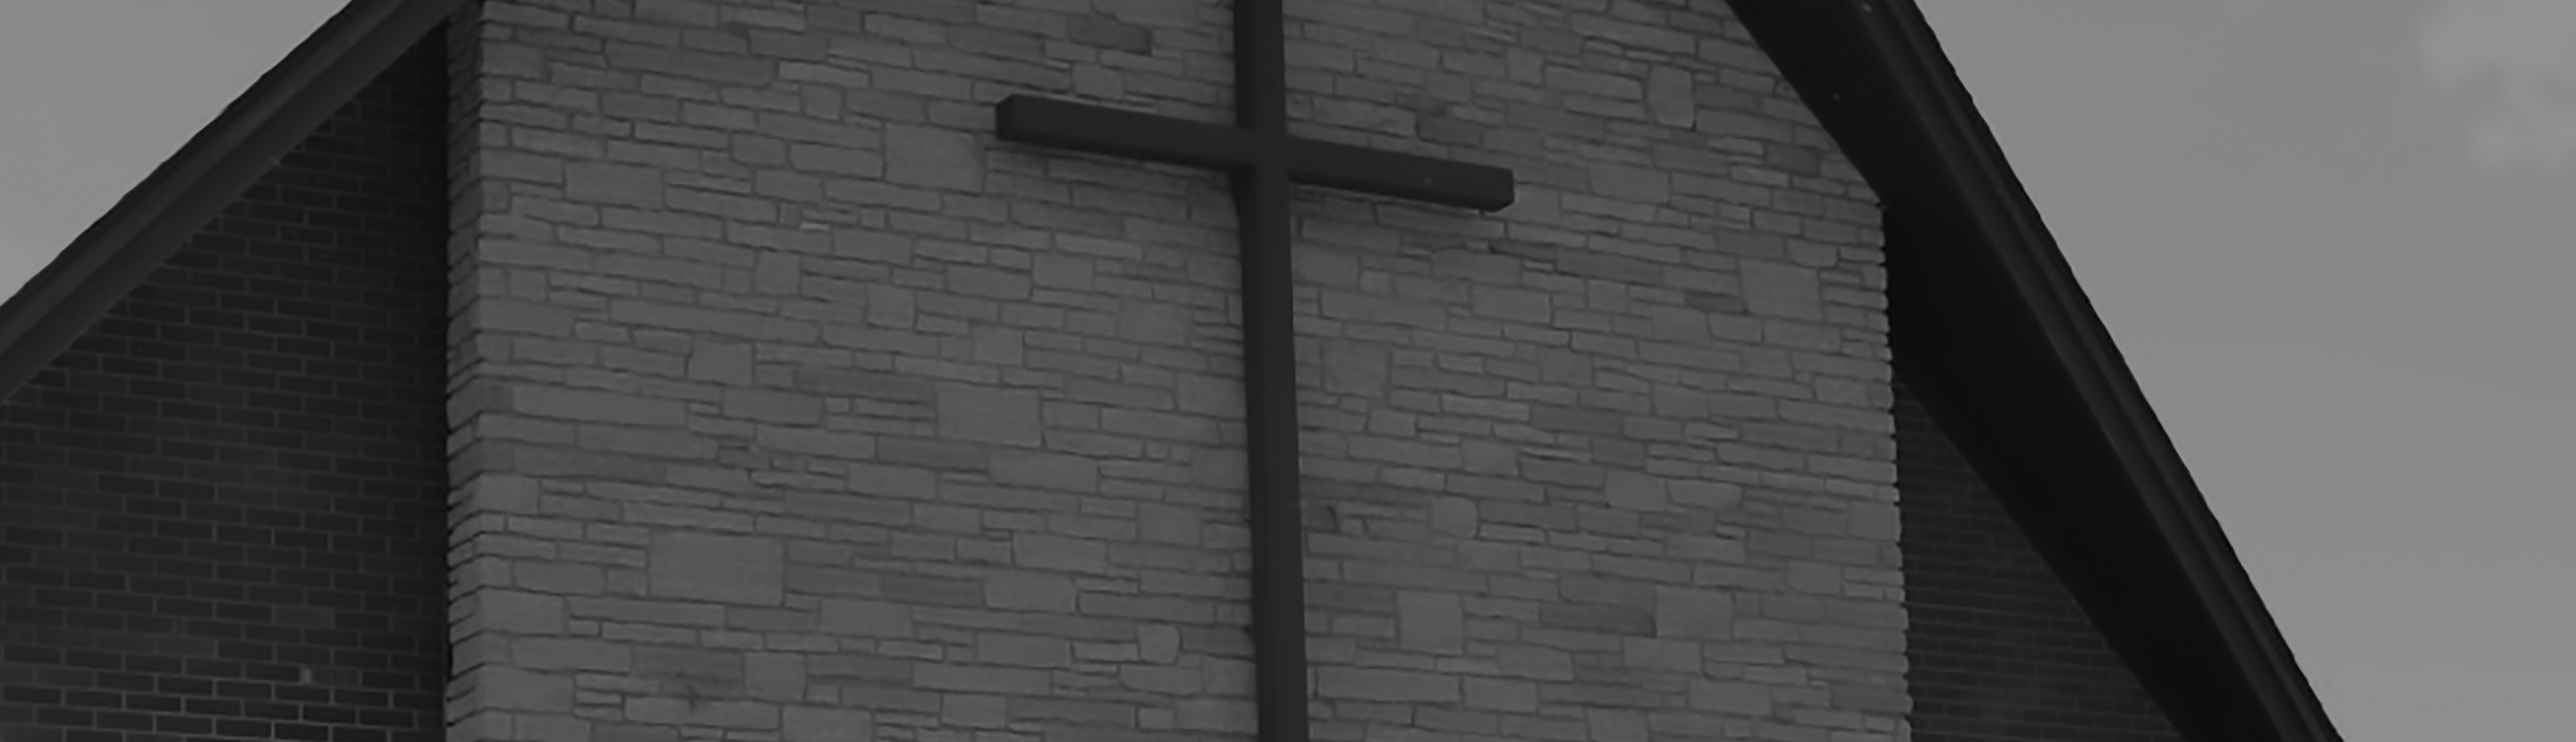 church-cross